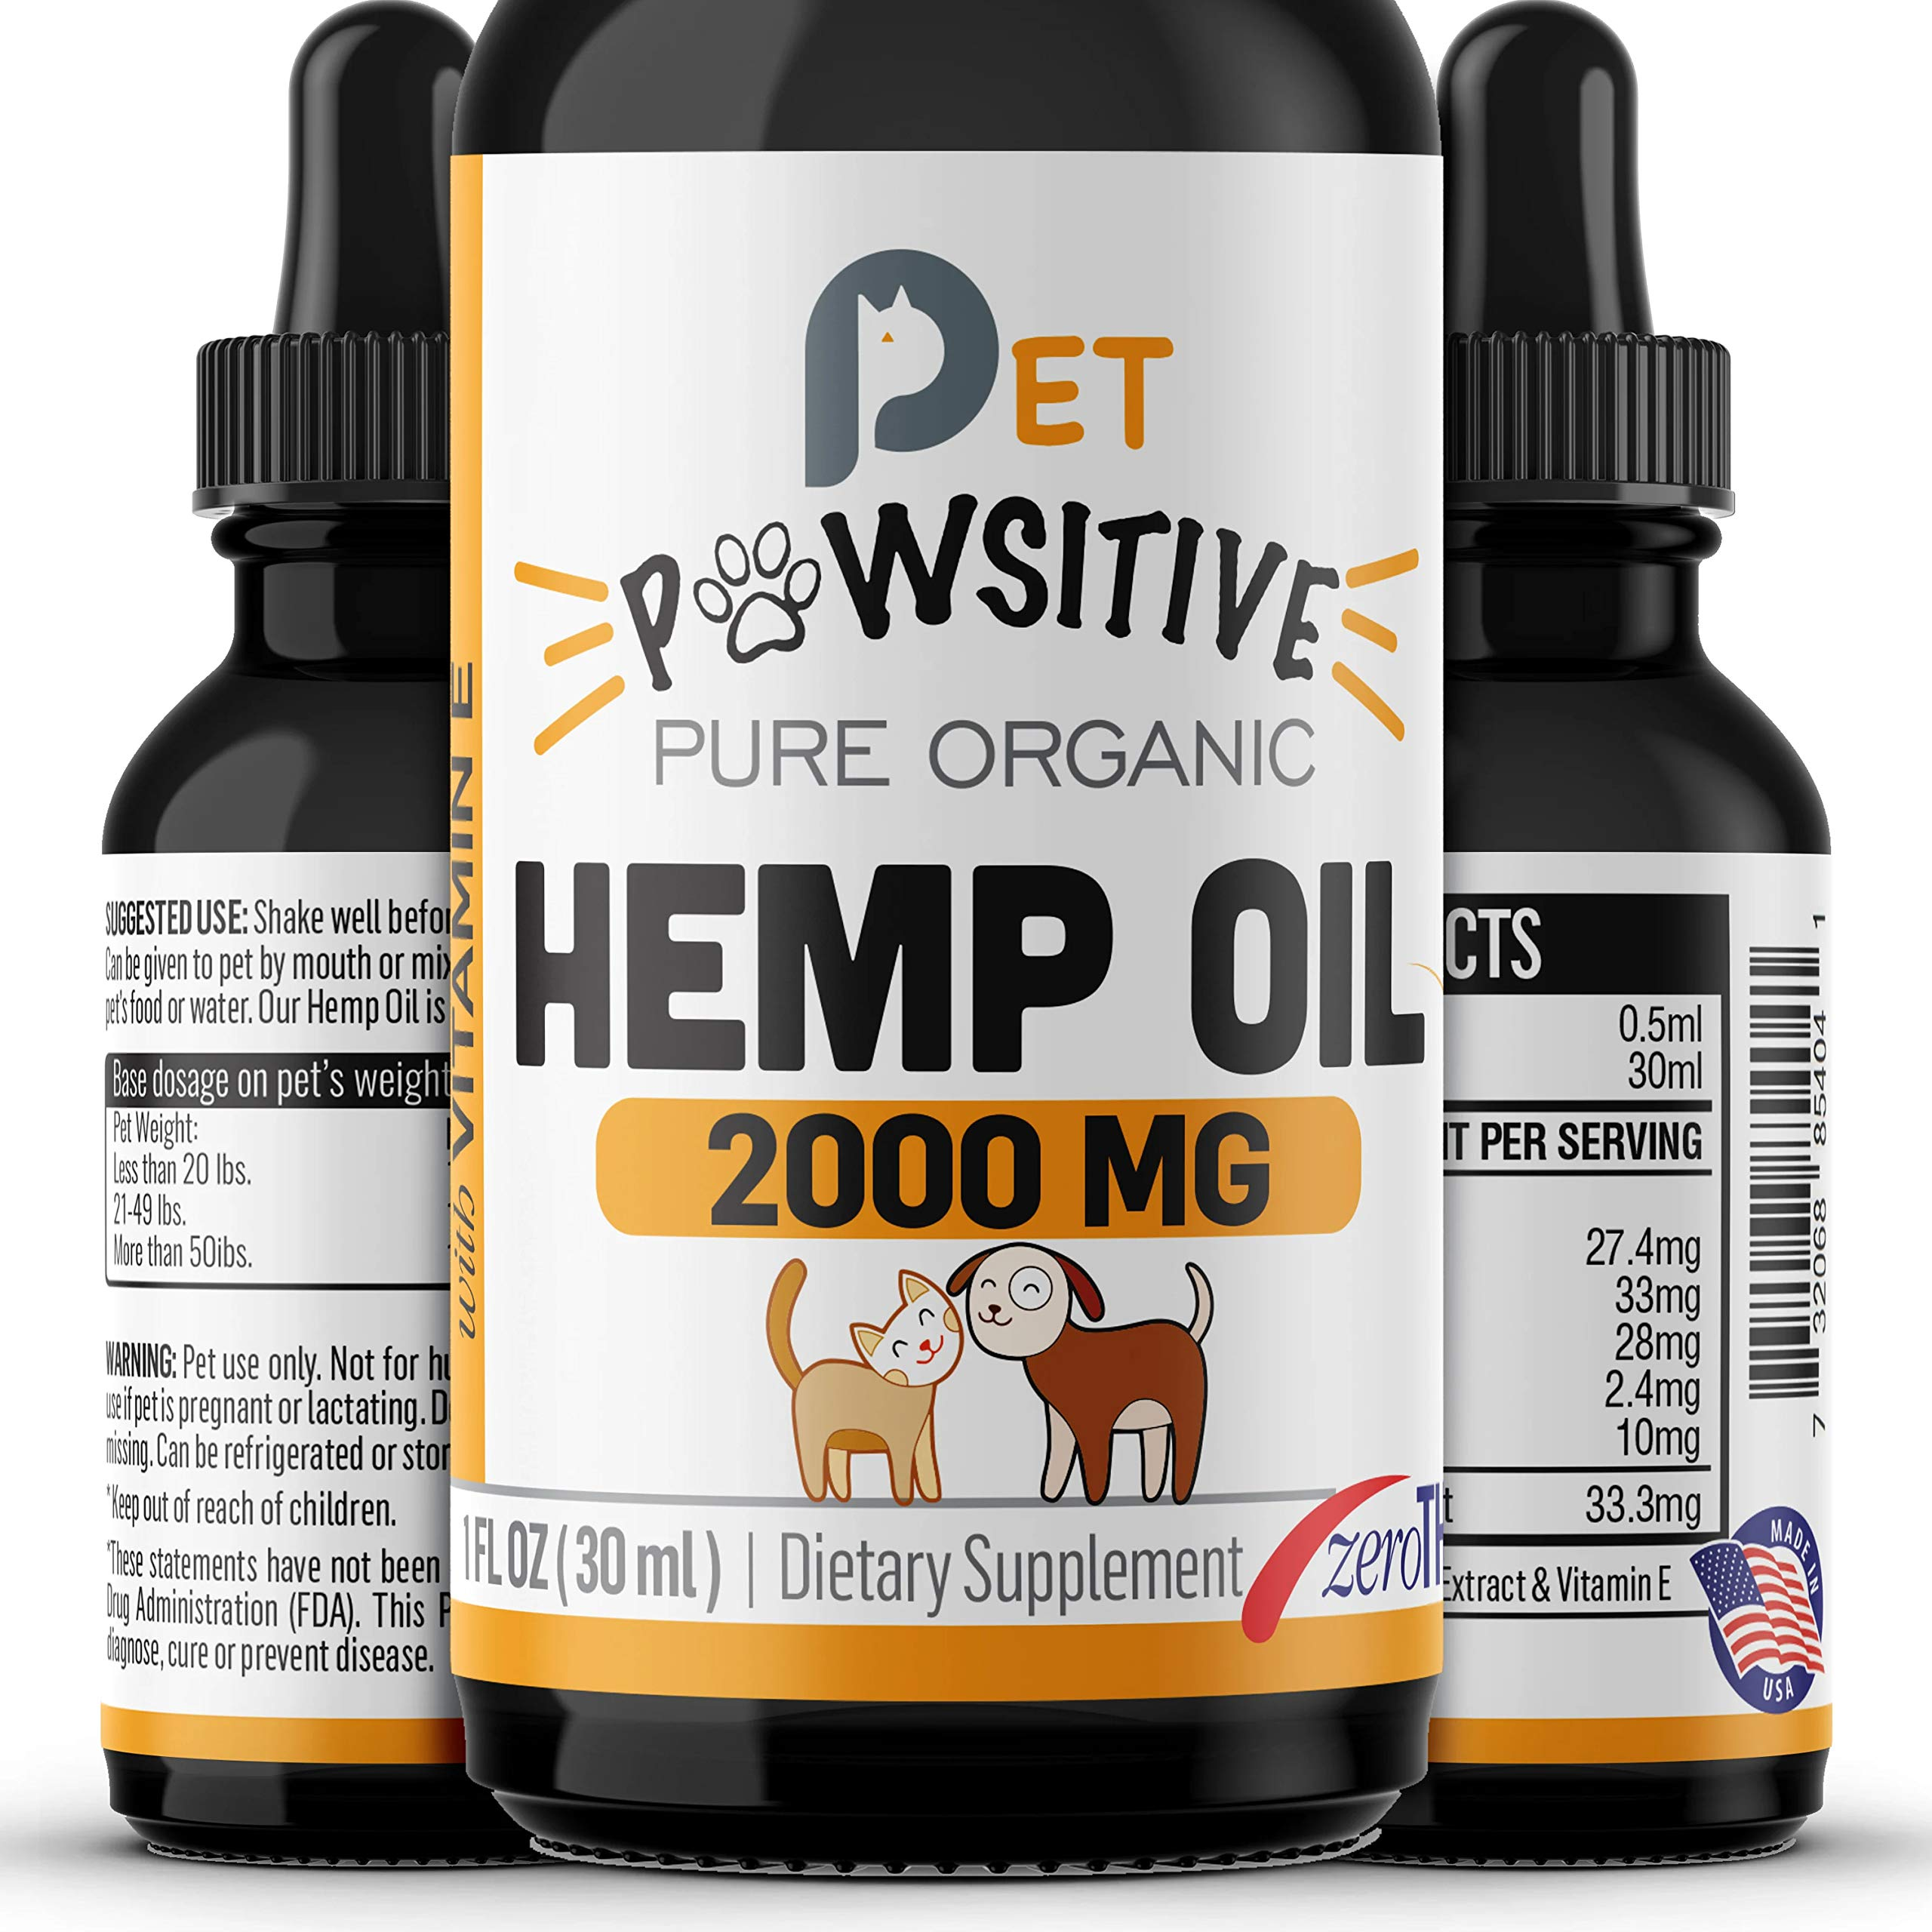 Pet Pawsitive - Hemp Oil Dogs Cats - 2000mg - Separation Anxiety, Joint Pain, Stress Relief, Arthritis, Seizures, Chronic Pains, Anti-Inflammatory - Omega 3, 6 & 9 - 100% Organic - Calming Drops by Pet Pawsitive